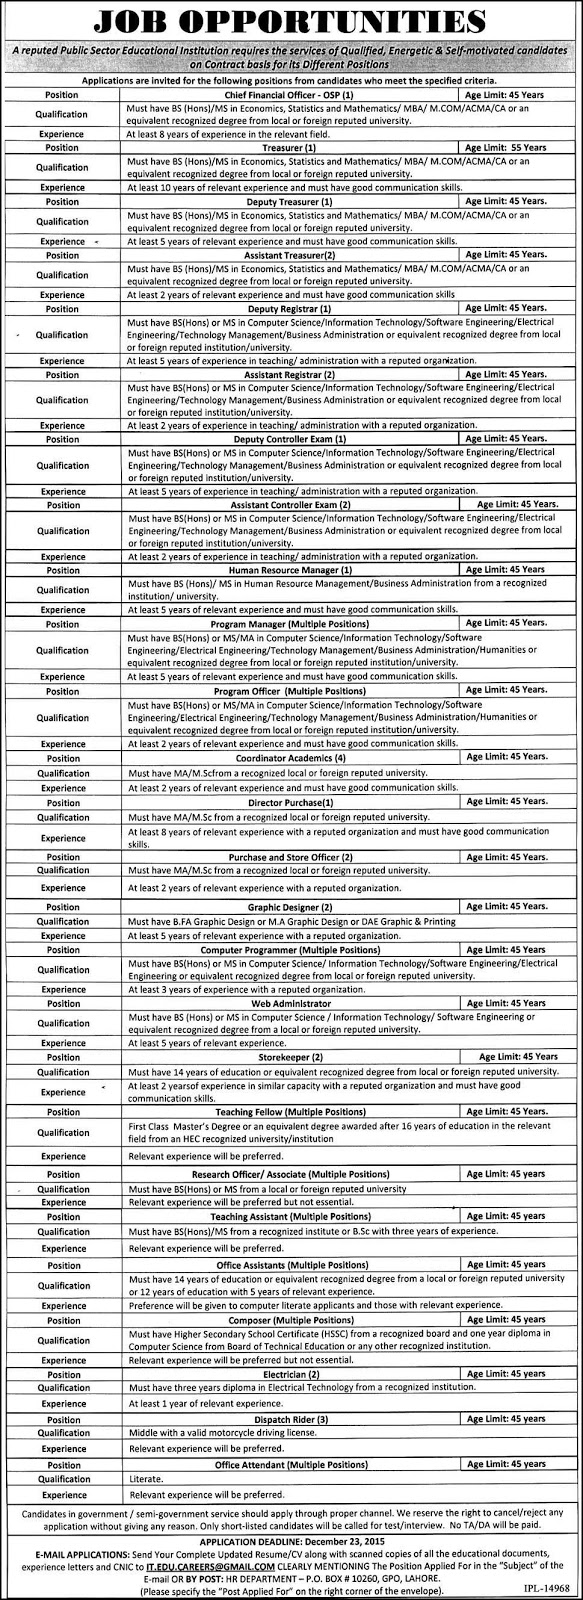 Jobs in Public Sector Educational Institution